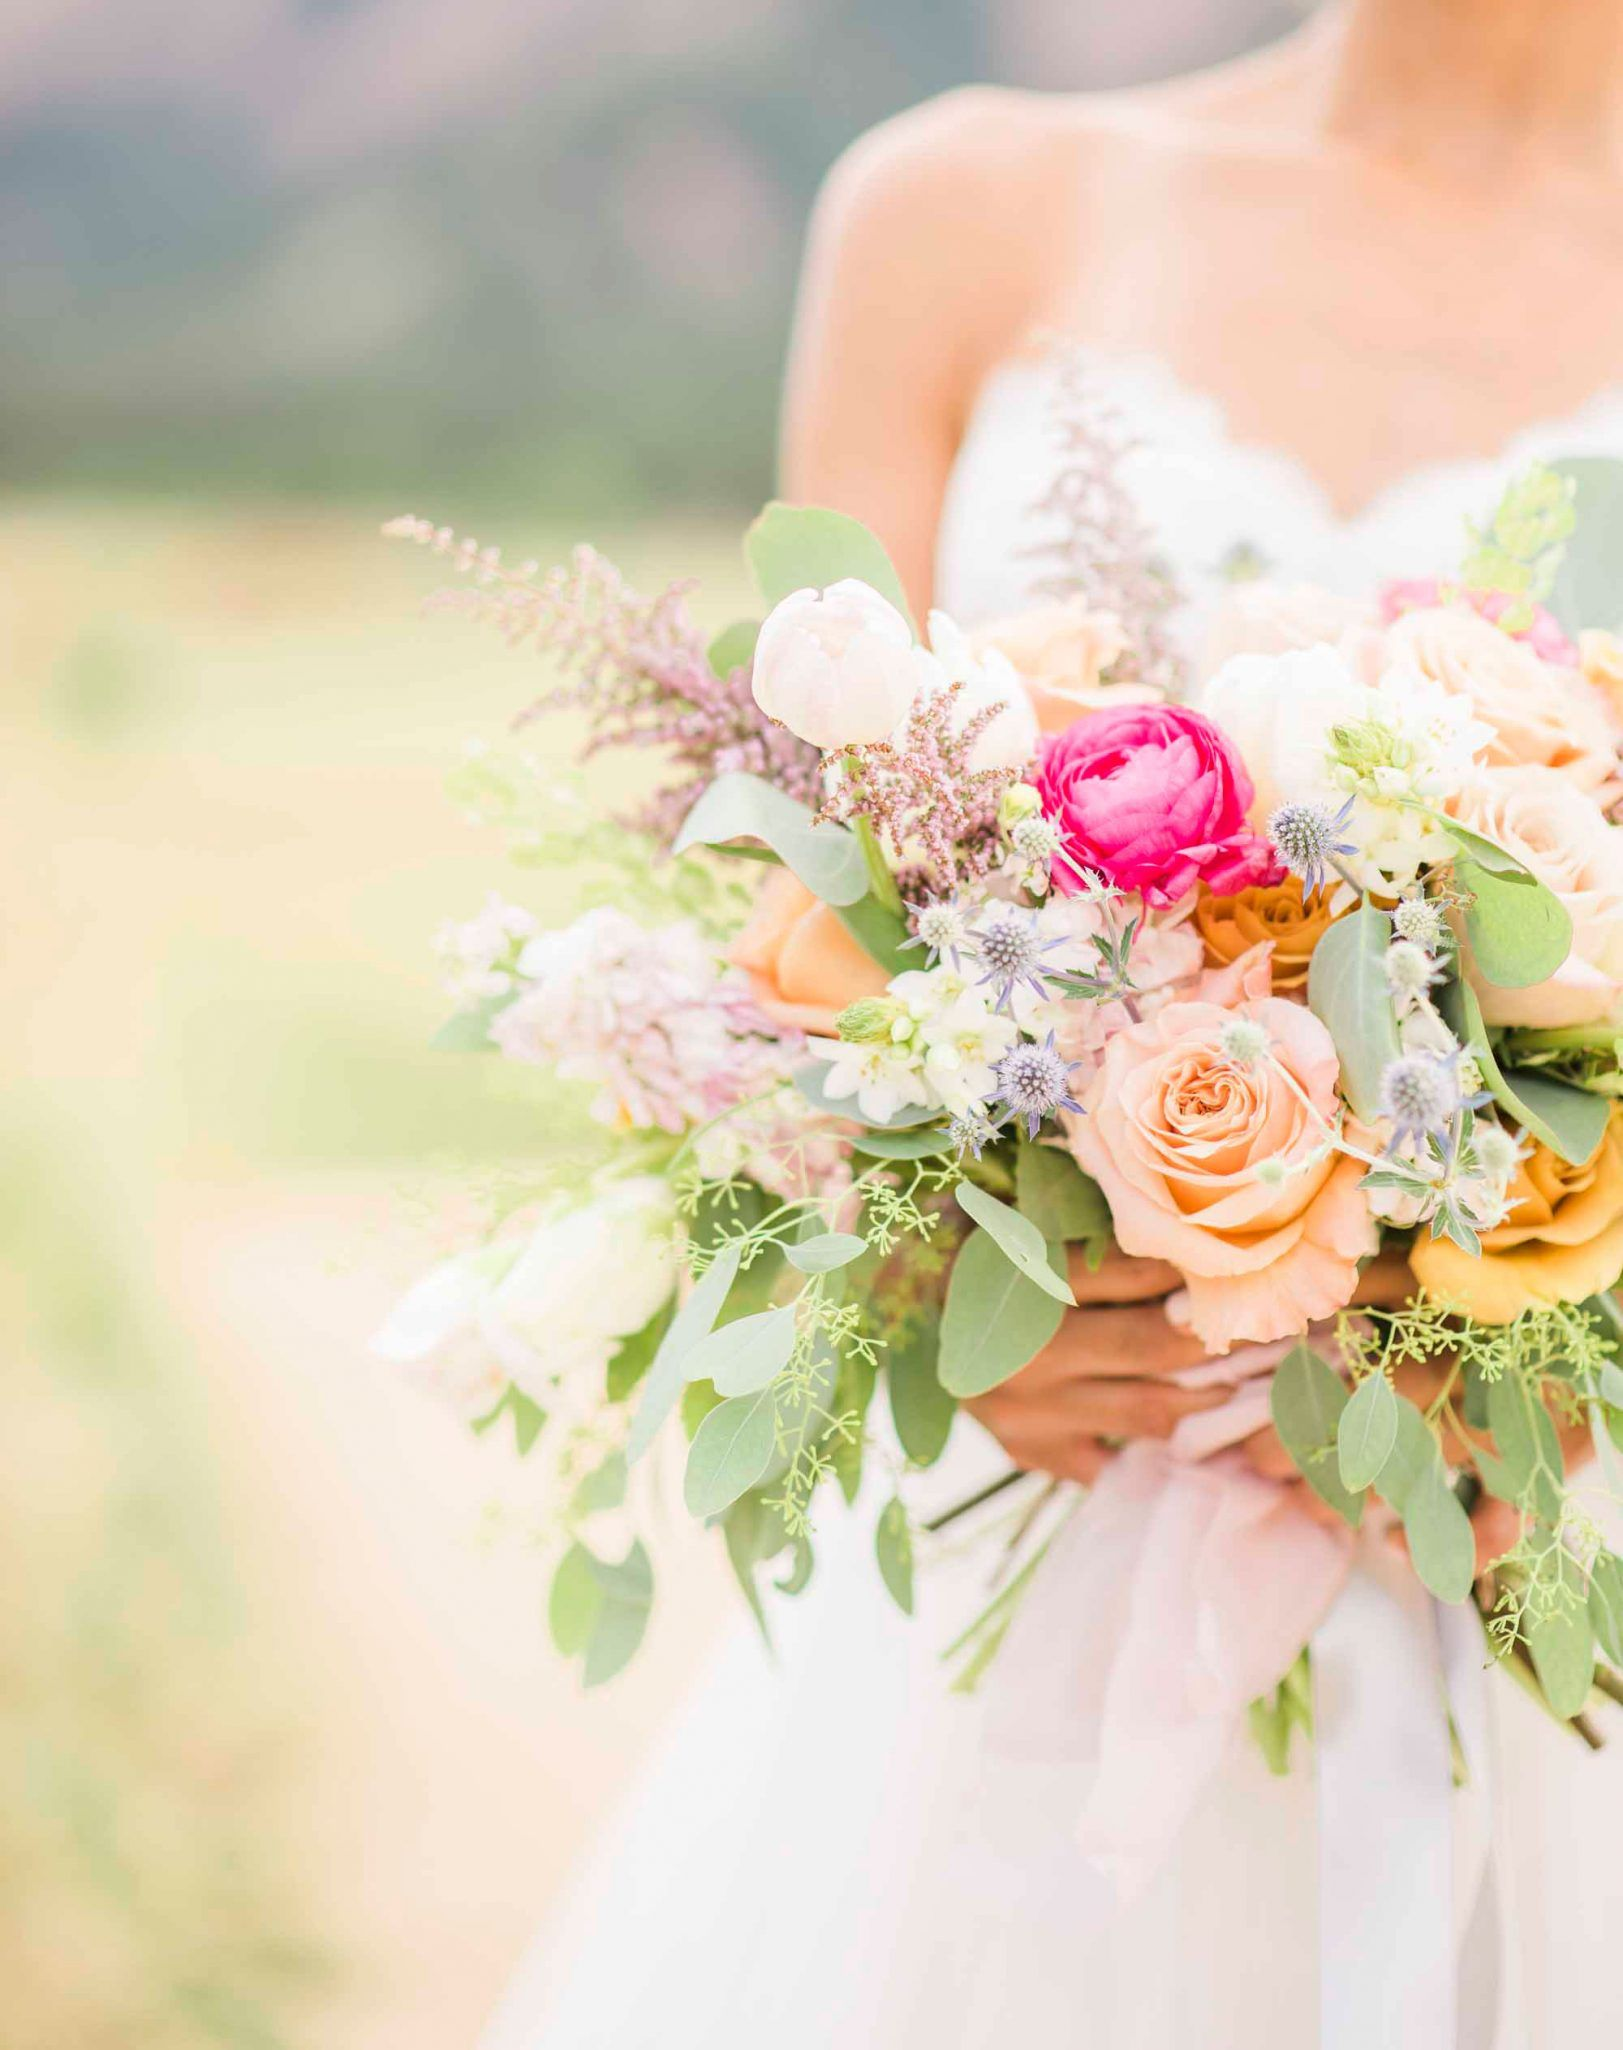 Soft Organic Inspiration For The Mountain Bride Luxe Mountain Weddings Mountain Destination Weddings Rustic Chic Wedding Wedding Bouqet Wedding